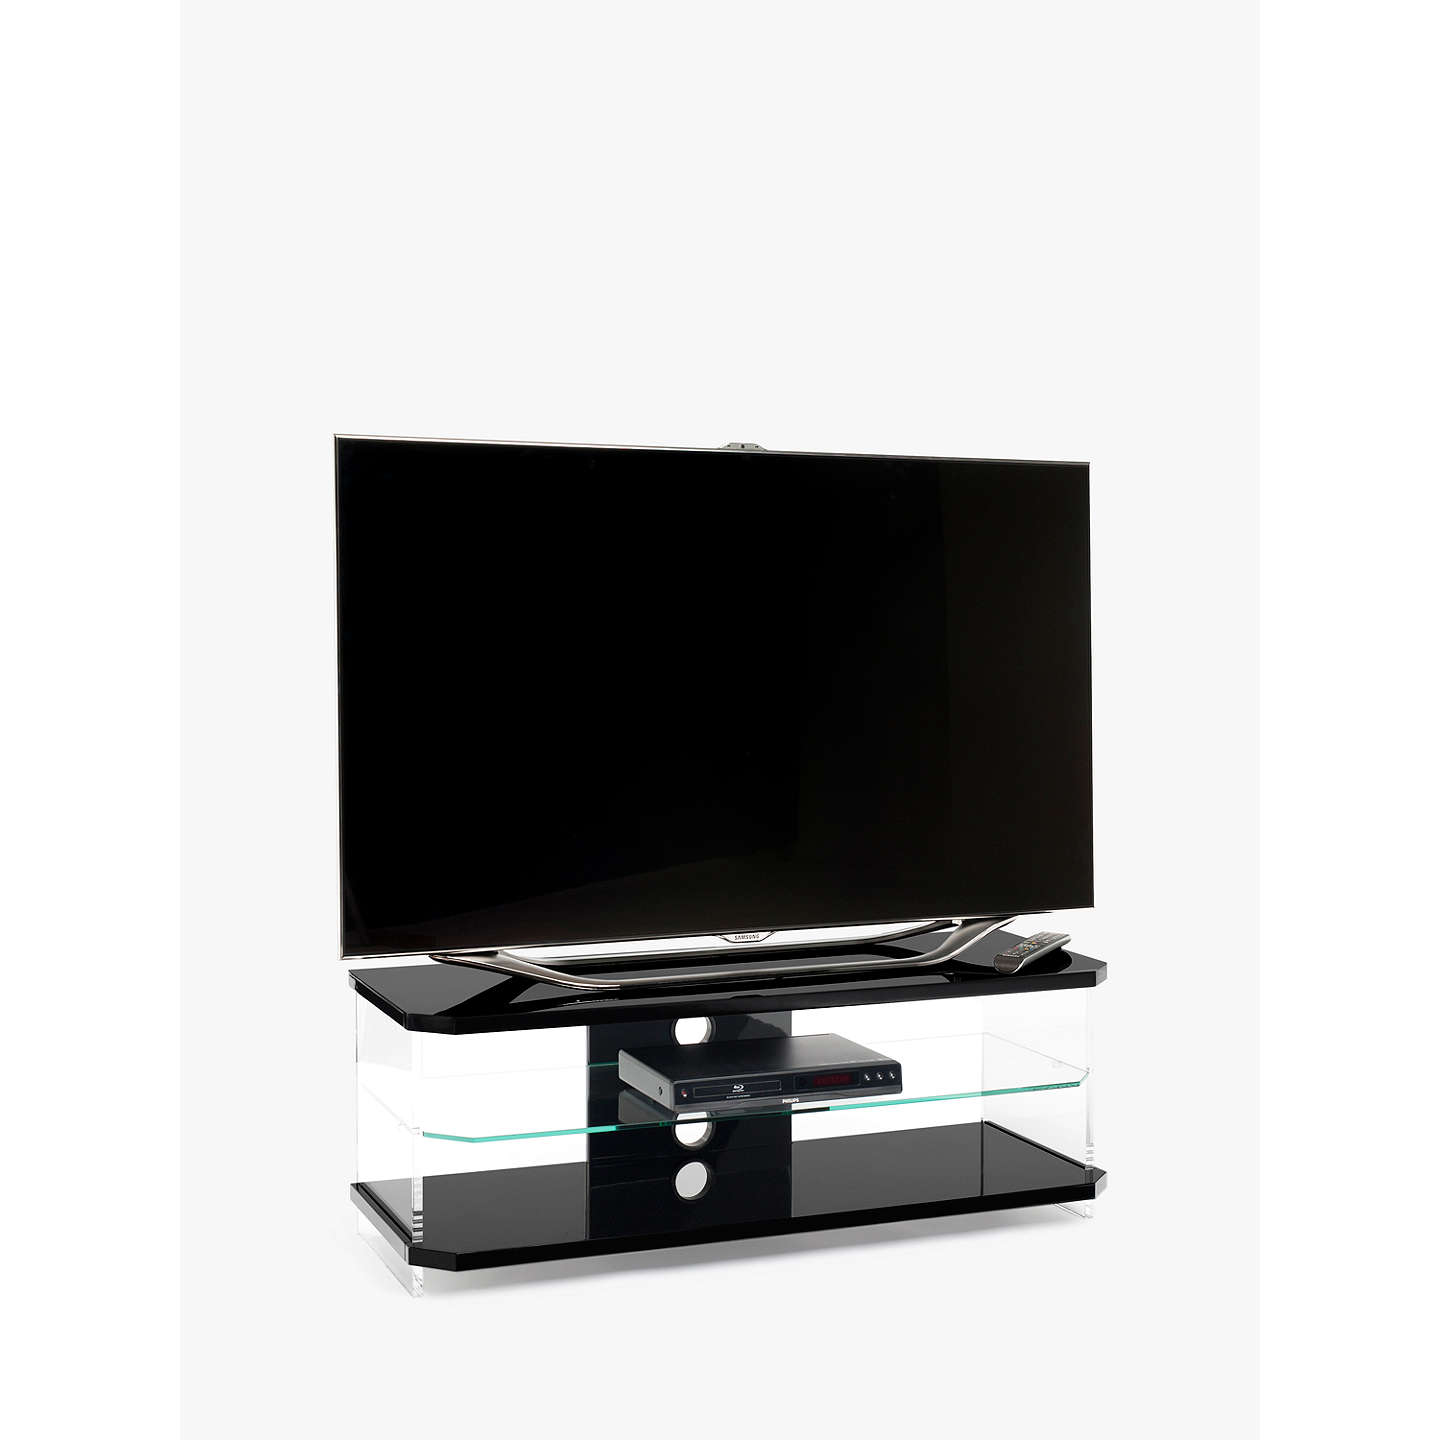 "BuyTechlink AI110 Air TV Stand for TVs up to 55"", Black Online at johnlewis.com"